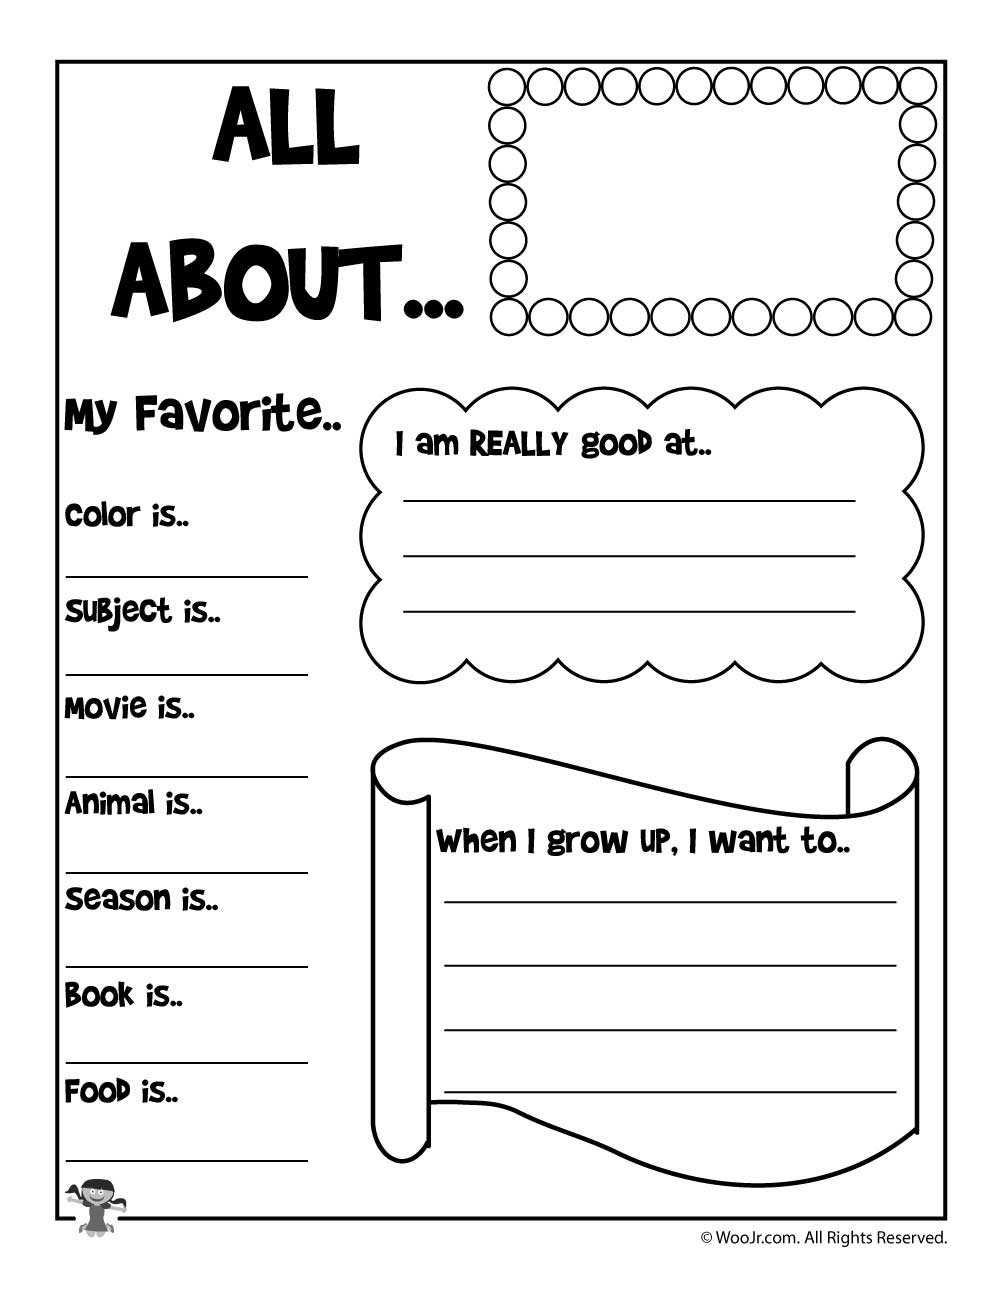 Worksheets All About Me Printable Worksheet all about me printable worksheet woo jr kids activities